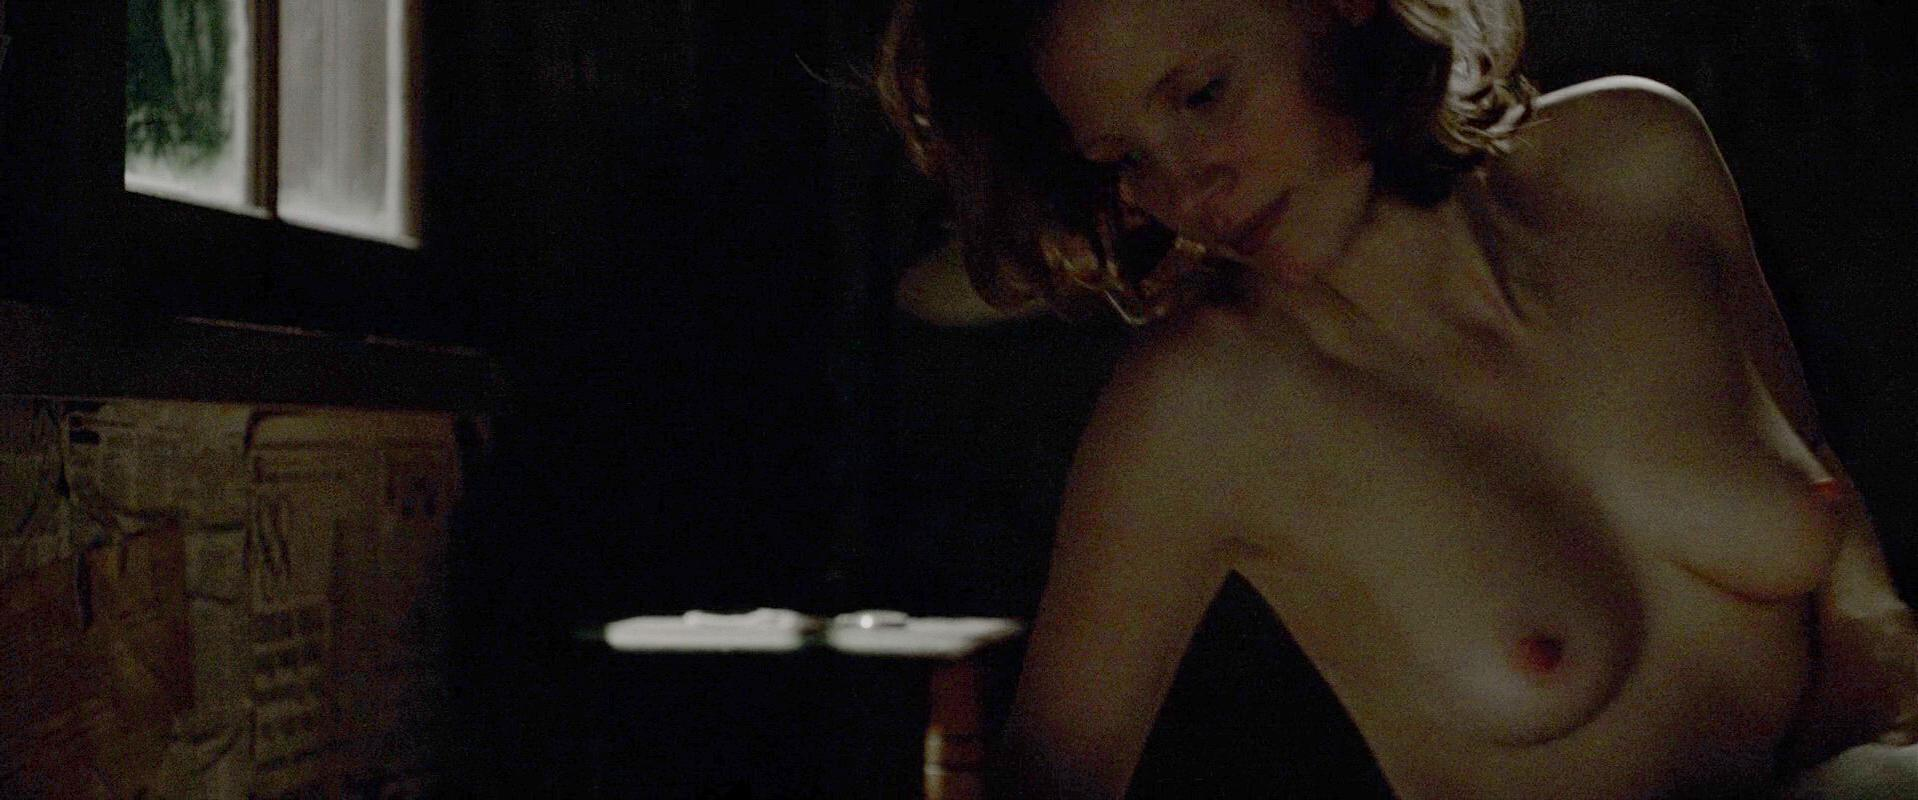 Jessica chastain nude as